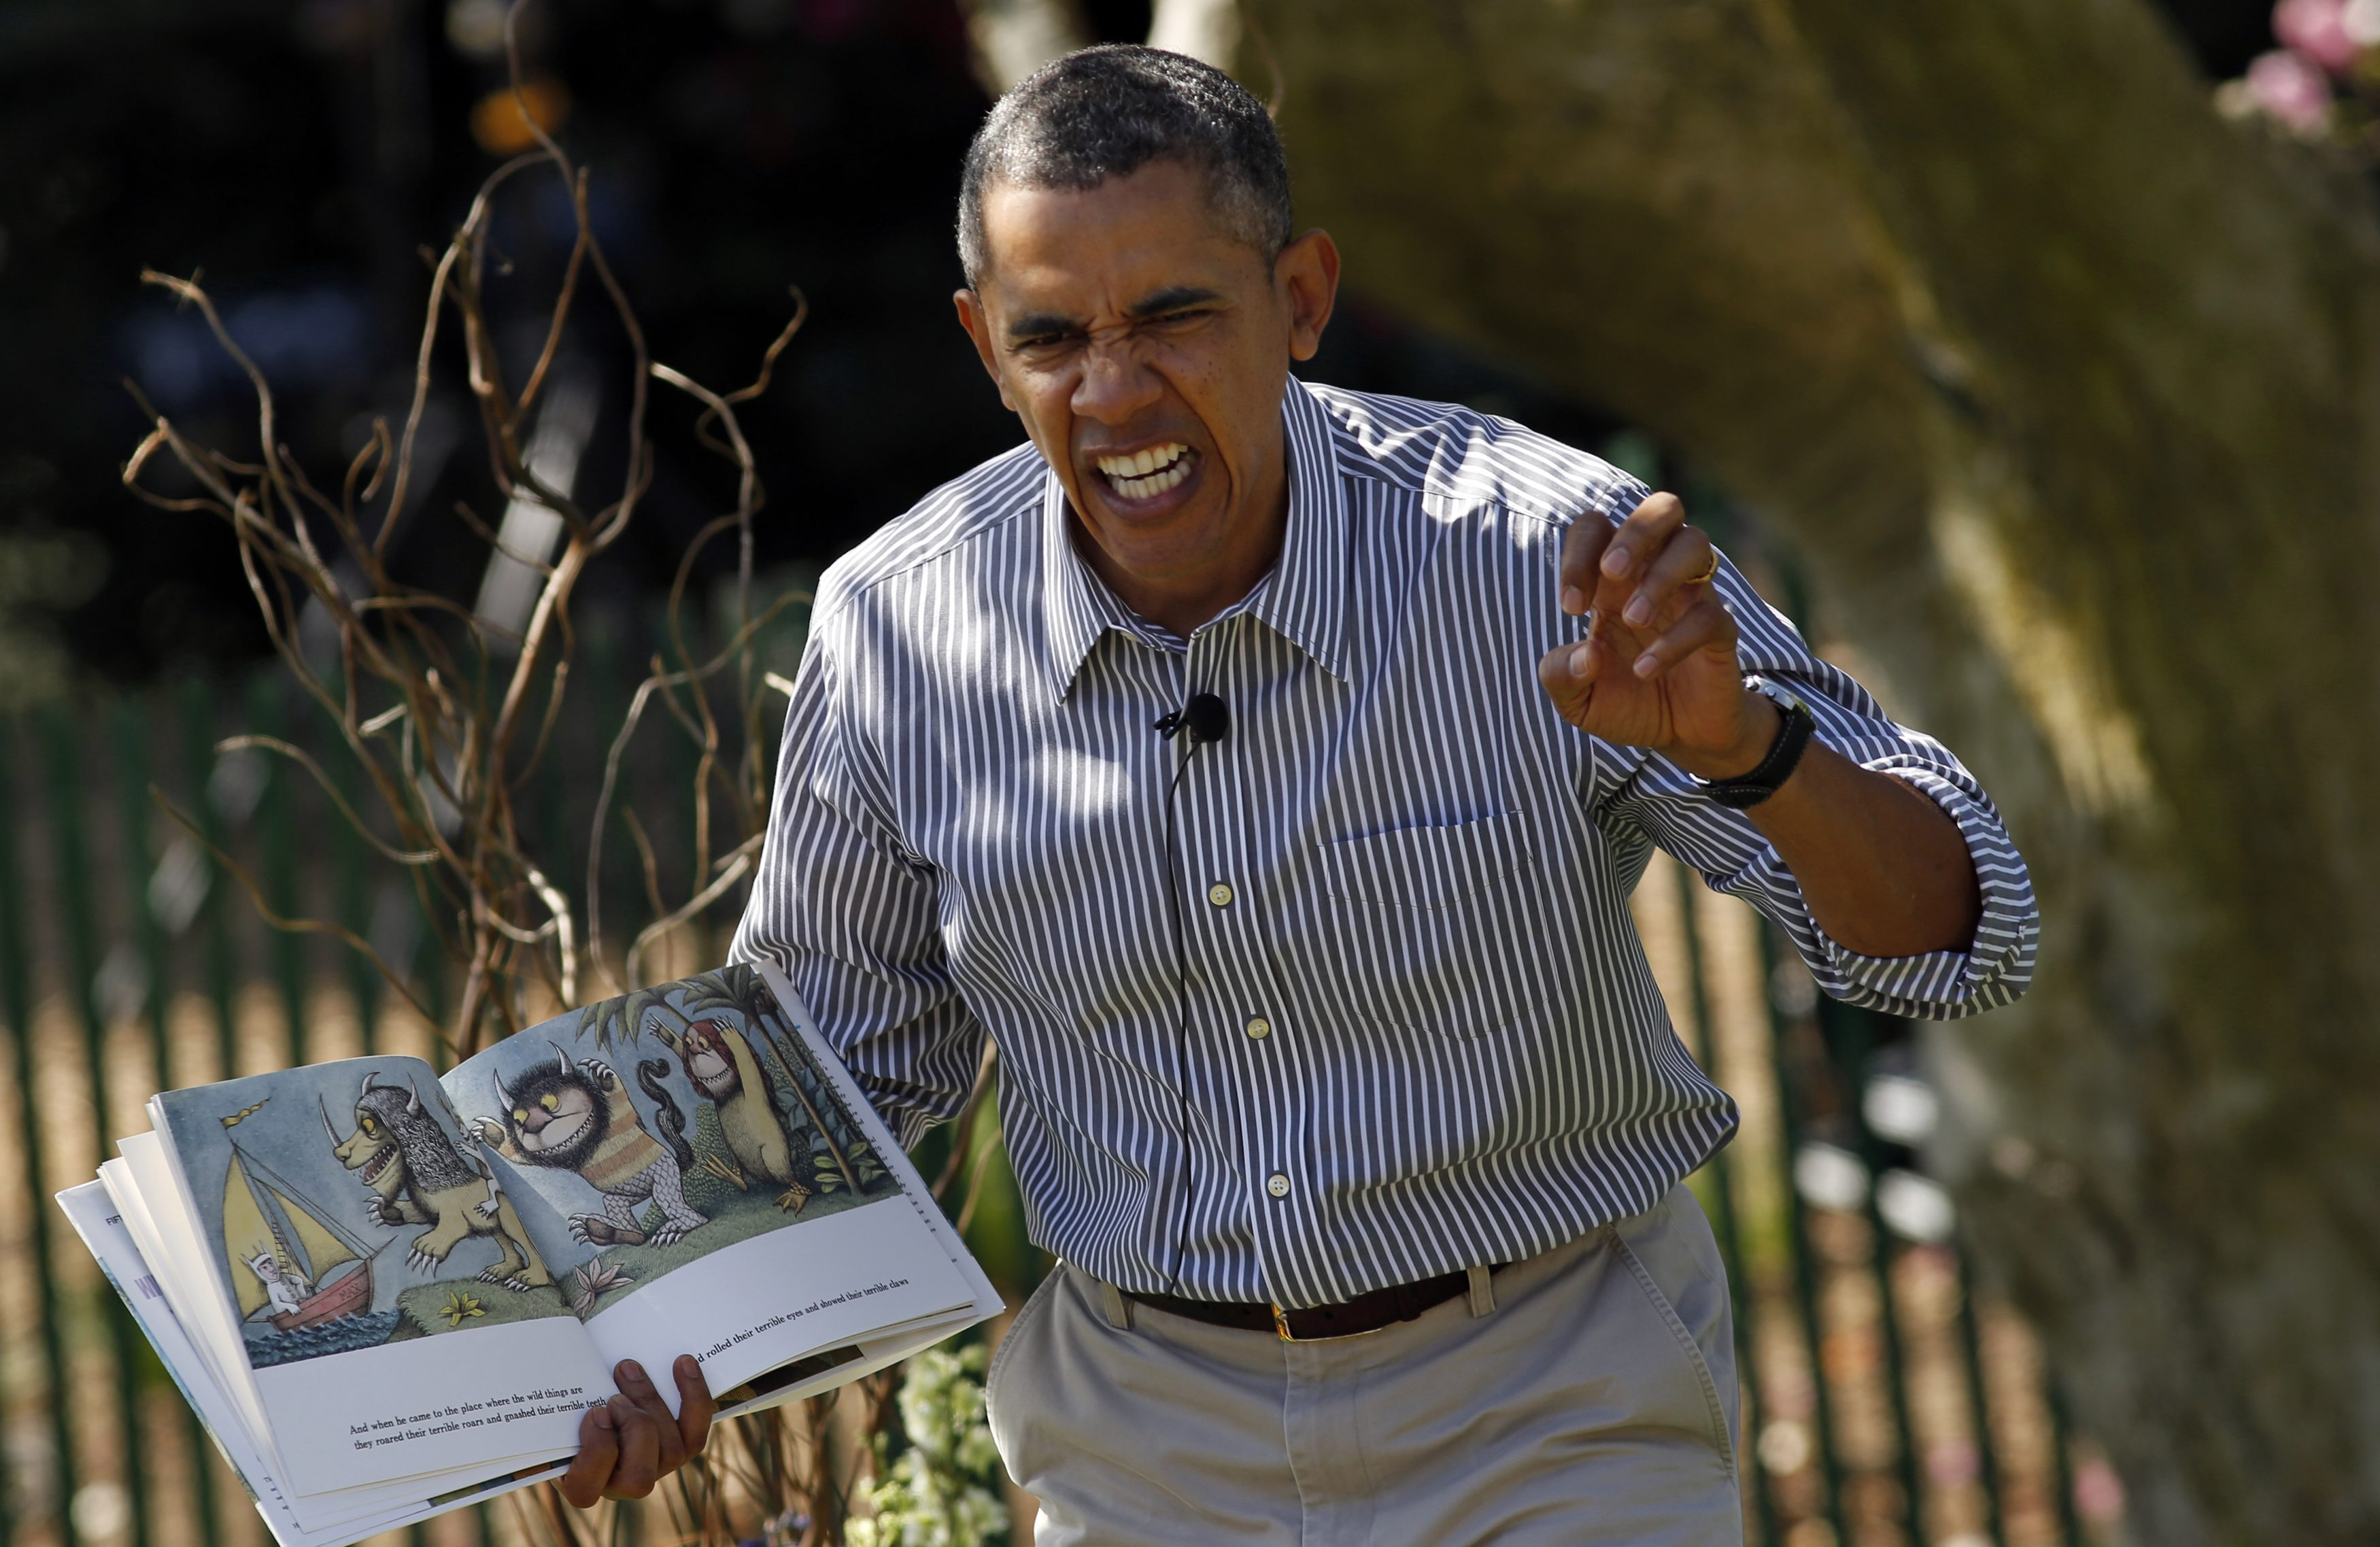 All of Barack Obama's summer reading lists, combined